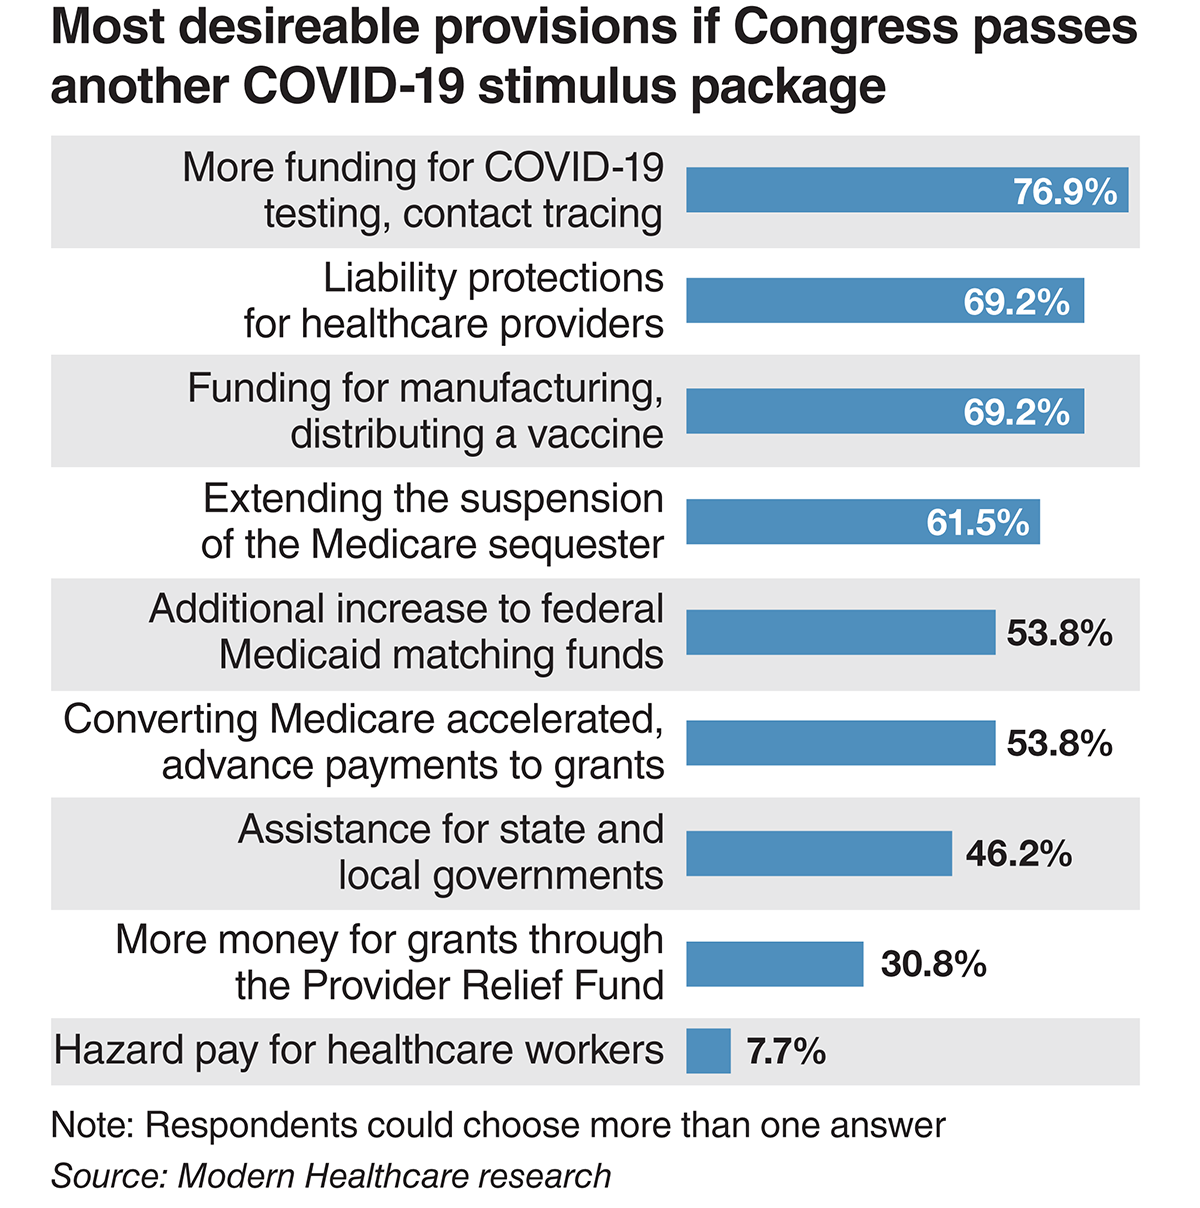 Most desirable provisions if Congress passes another COVID-19 stimulus package